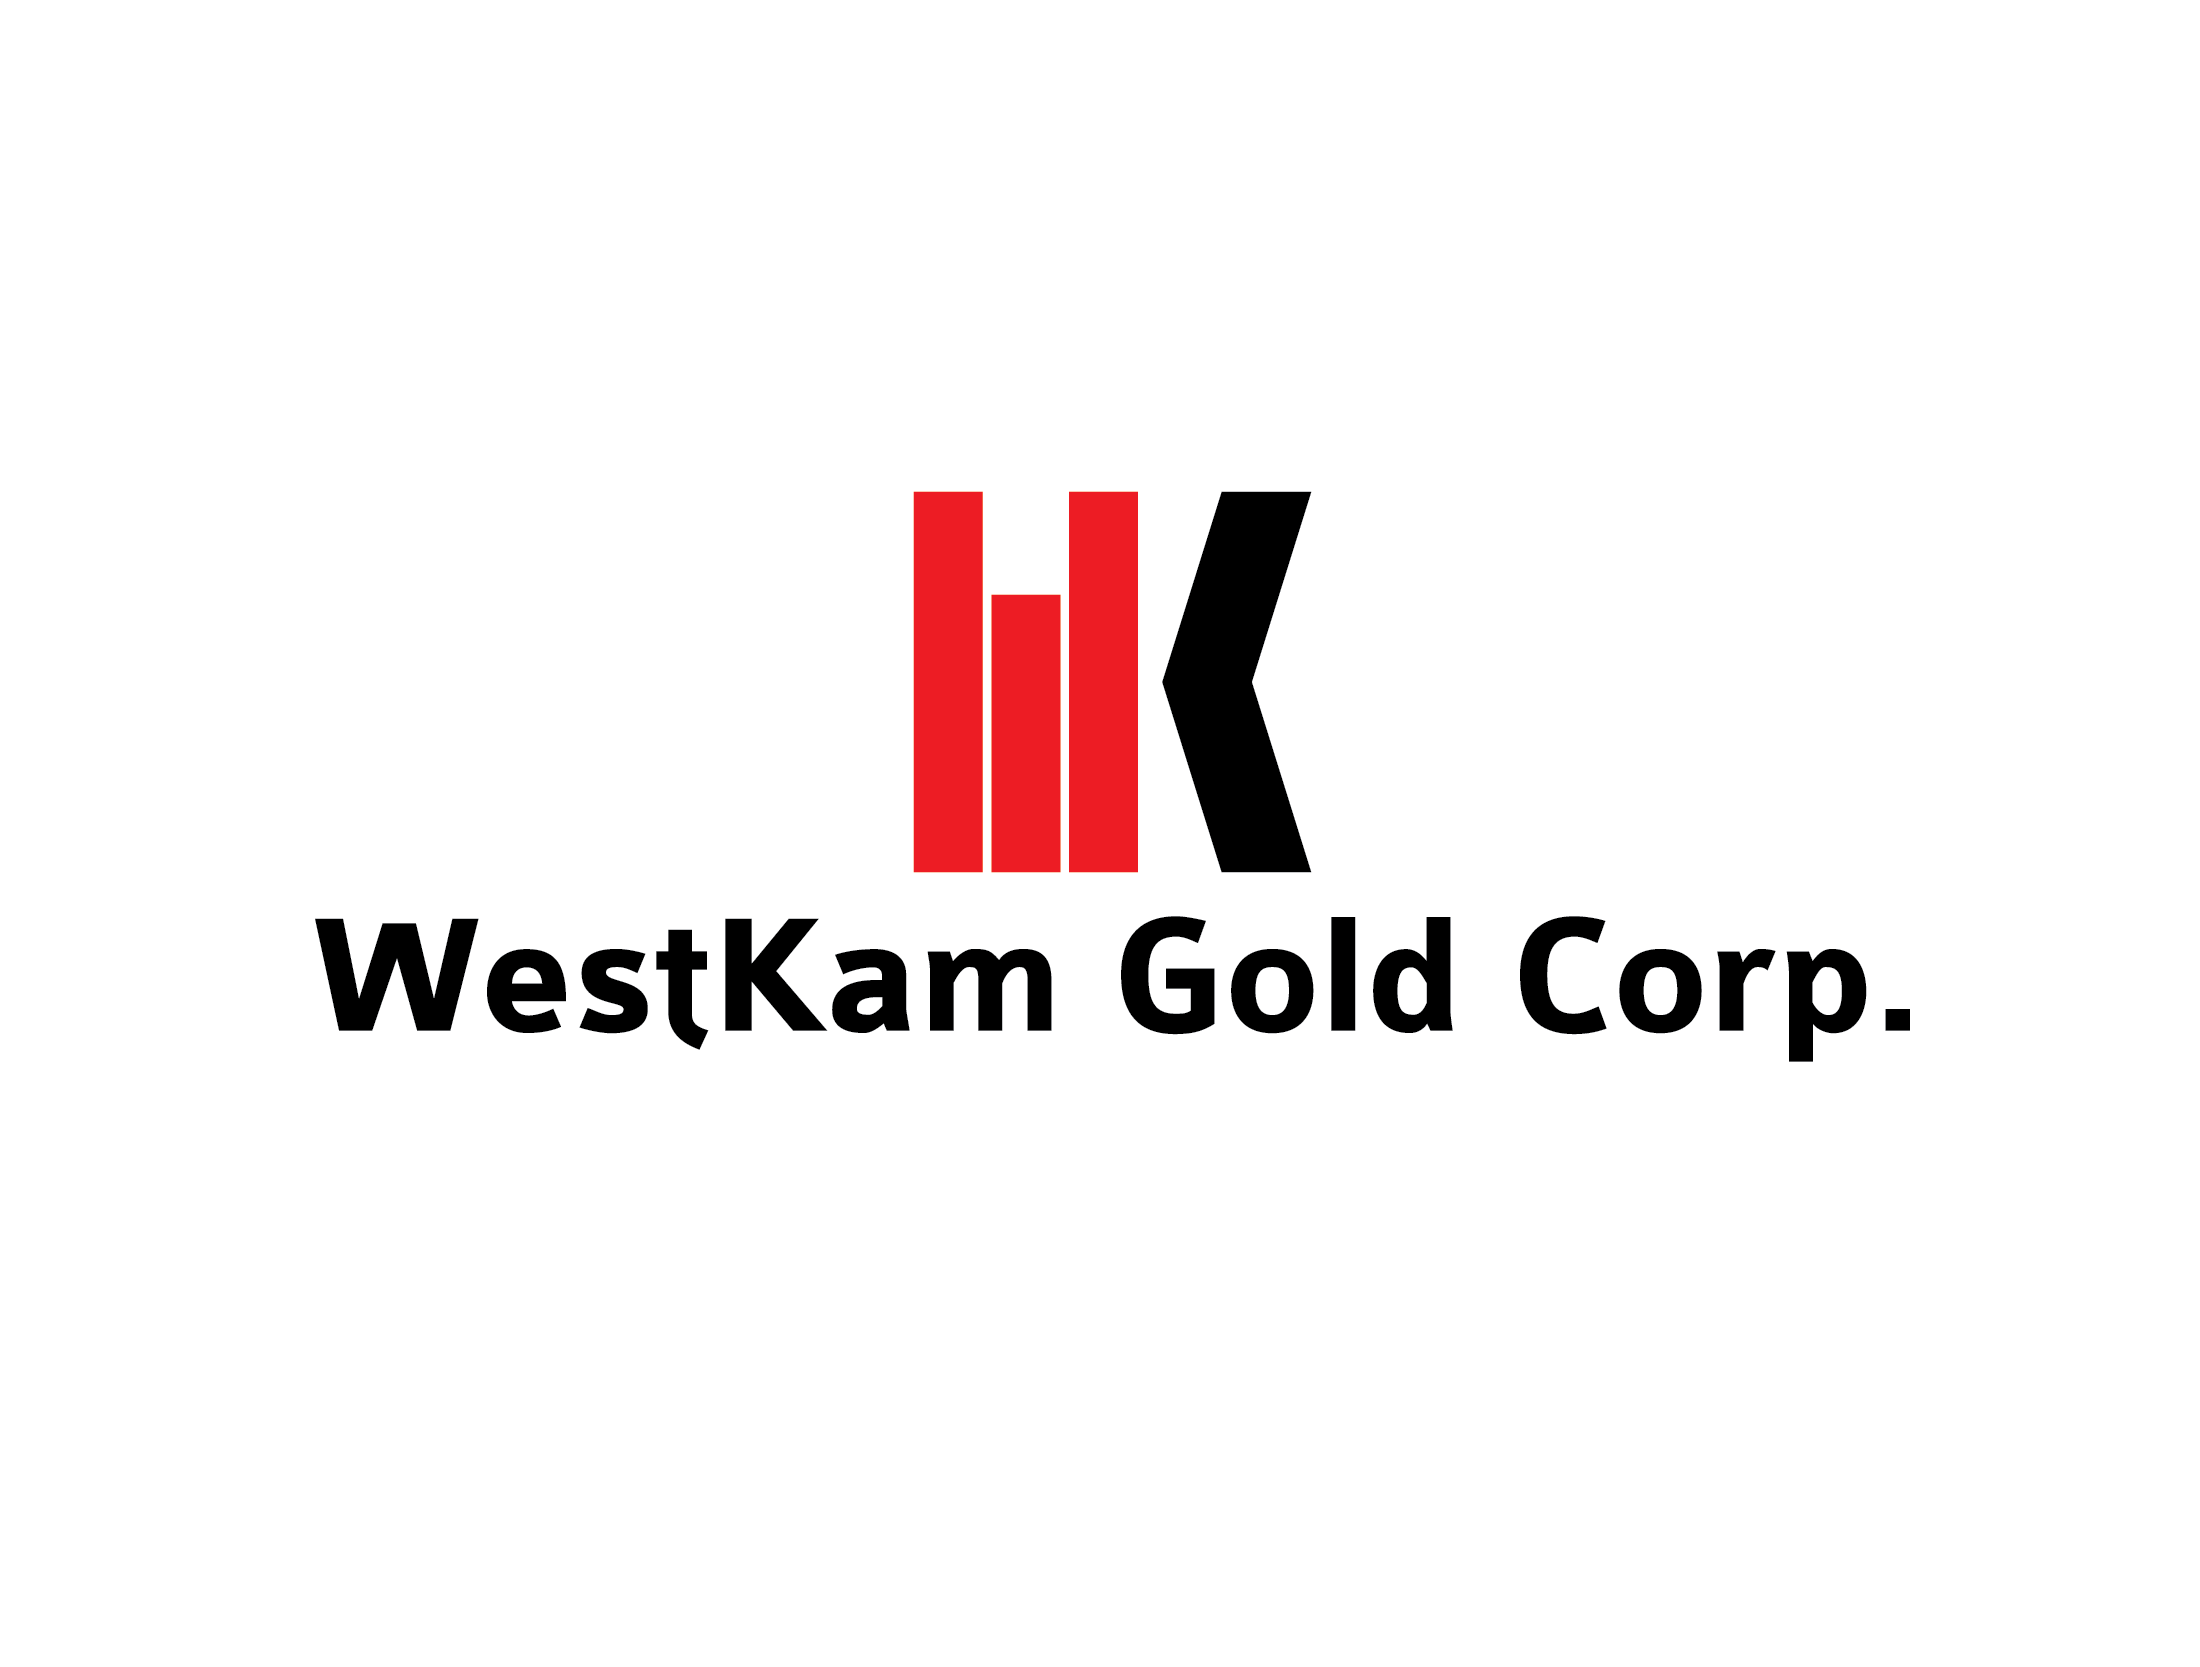 Logo Design by Jerico Catipay - Entry No. 69 in the Logo Design Contest New Logo Design for WestKam Gold Corp..